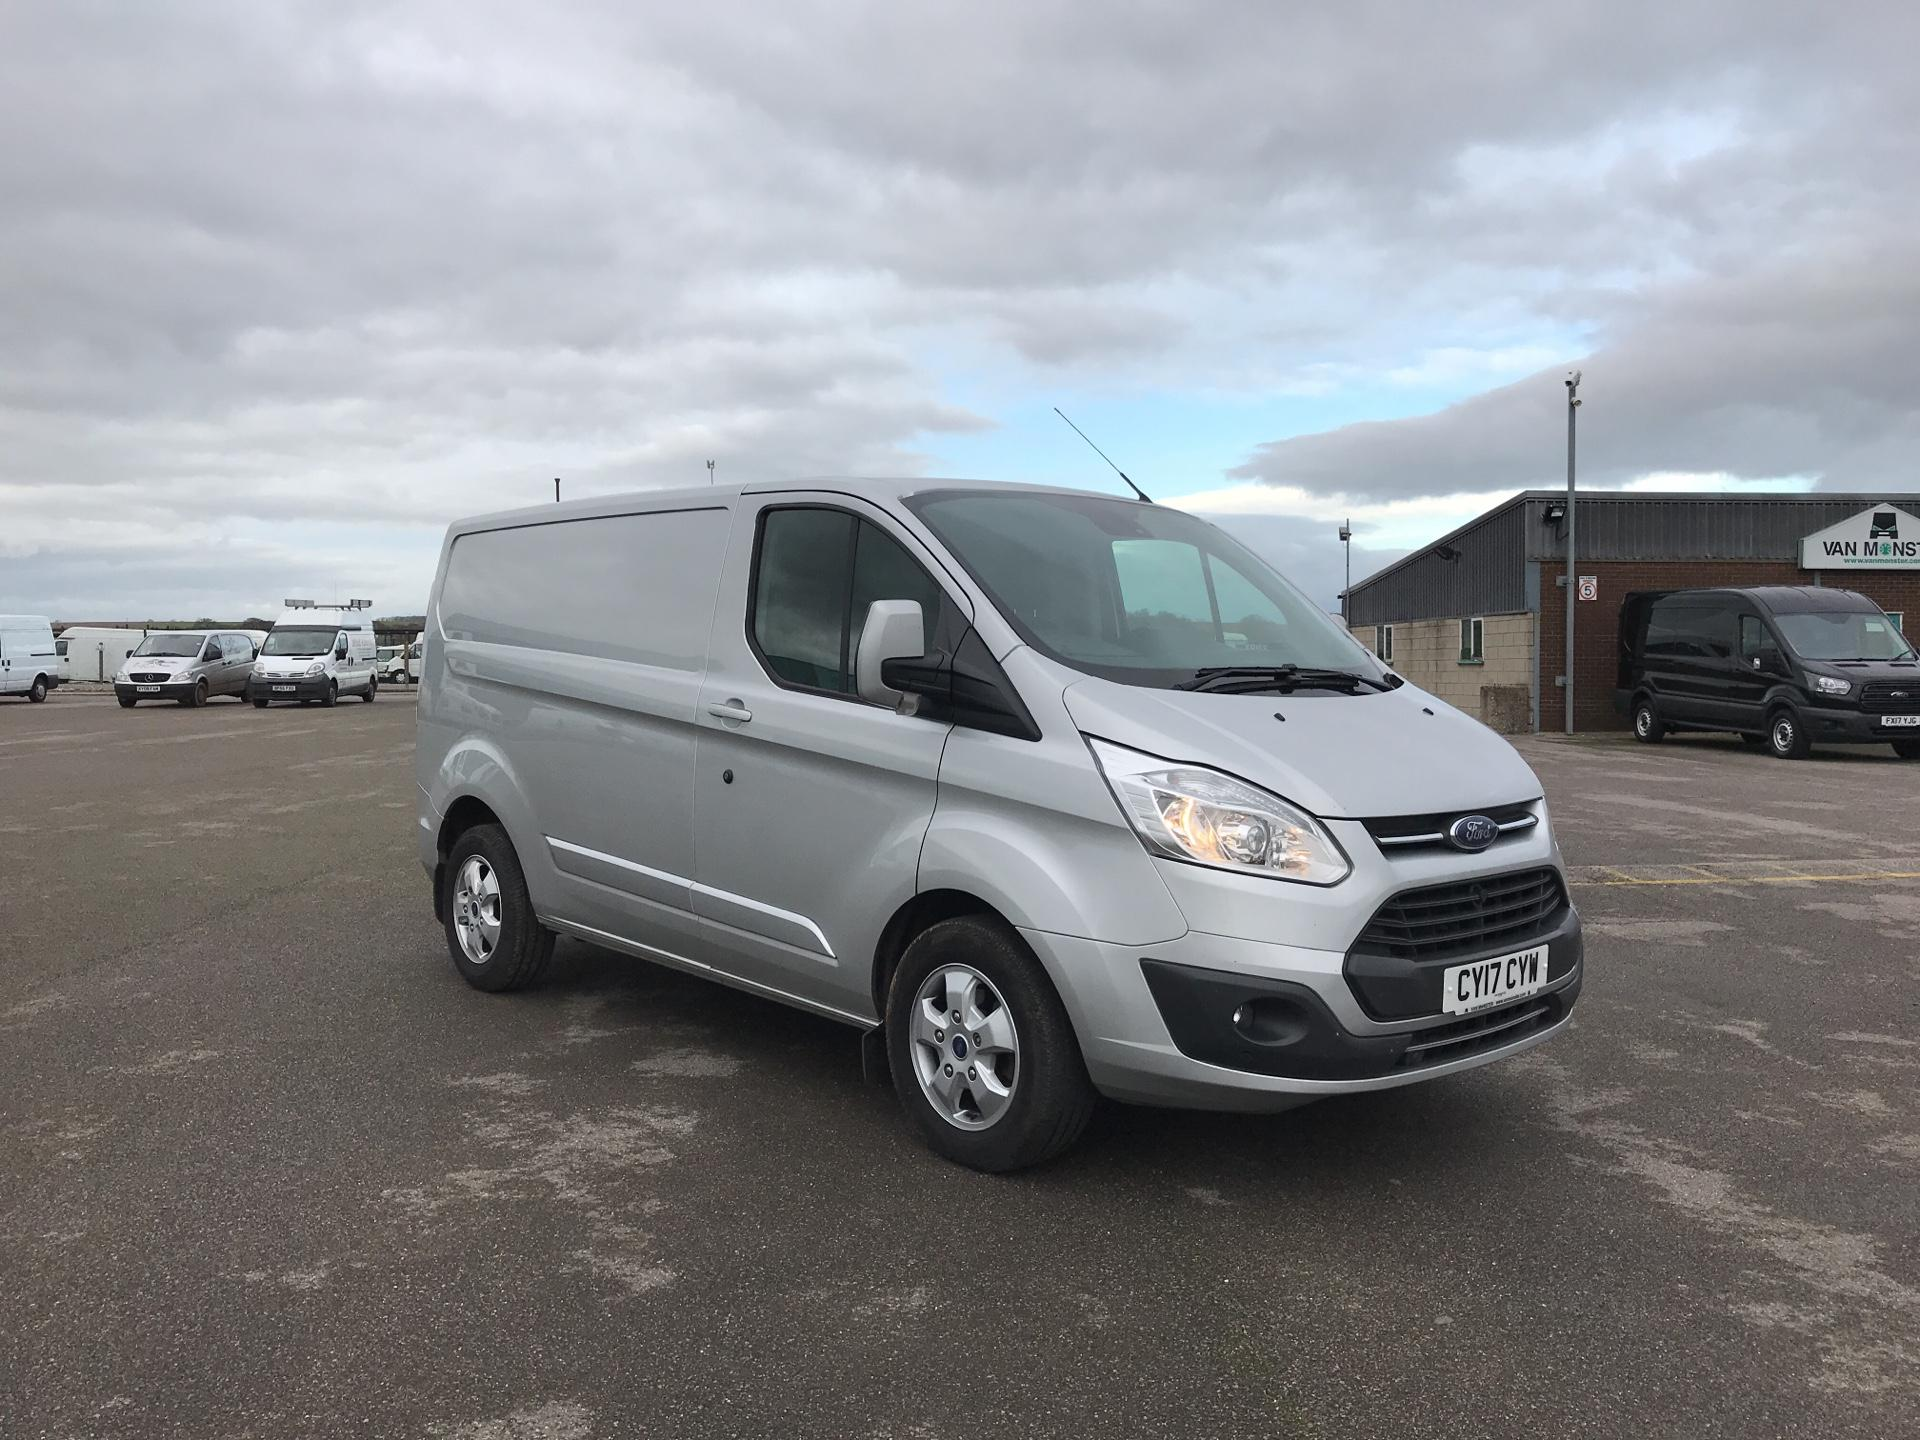 2017 Ford Transit Custom 290 L1 DIESEL FWD 2.0 TDCI 170PS LOW ROOF LIMITED VAN EURO 6 (CY17CYW)